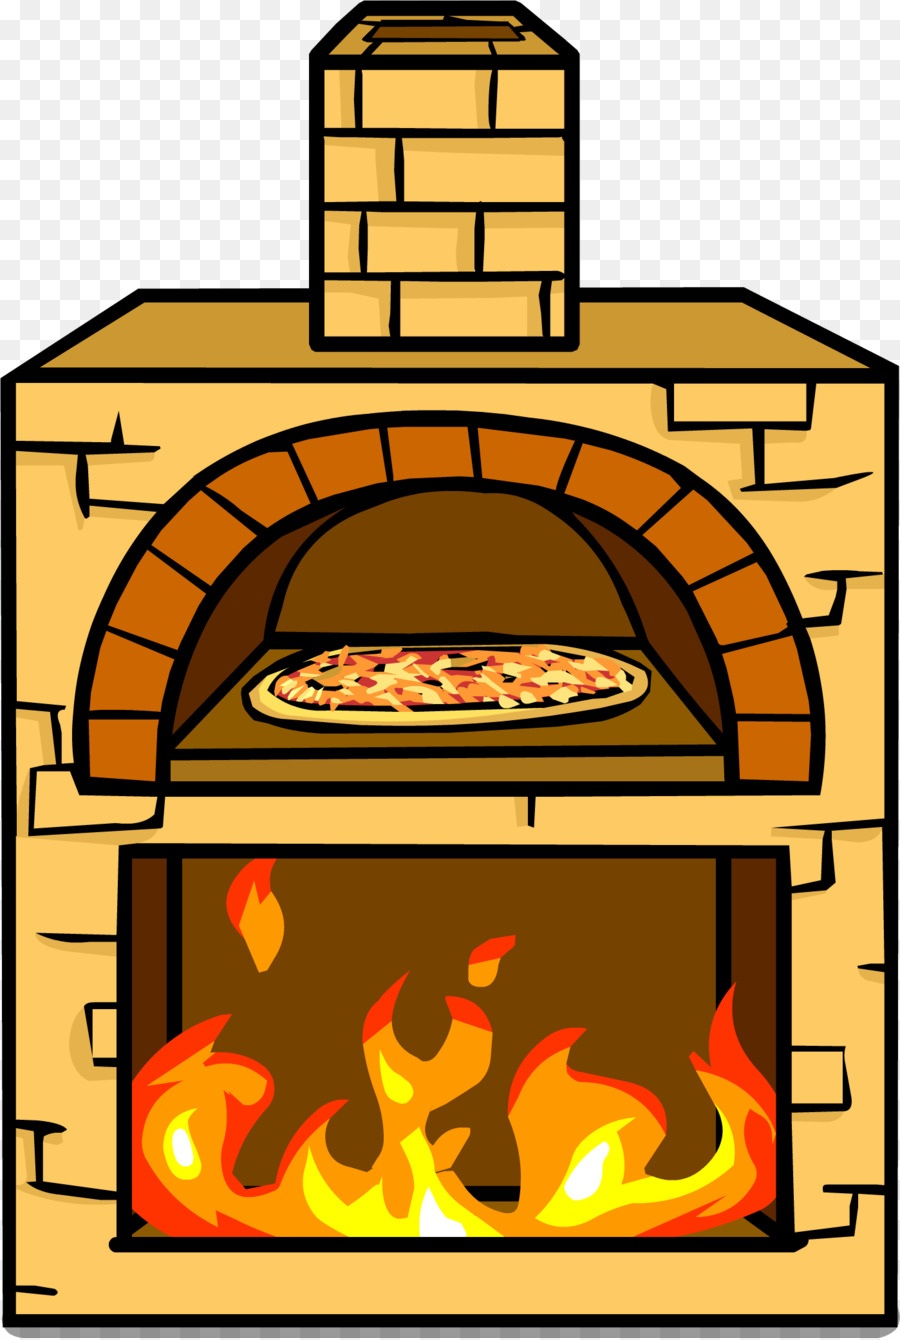 Club Penguin Pizza Igloo Wood Fired Oven Stove Png Download 1398 Rh Kisspng Com Burning Clipart